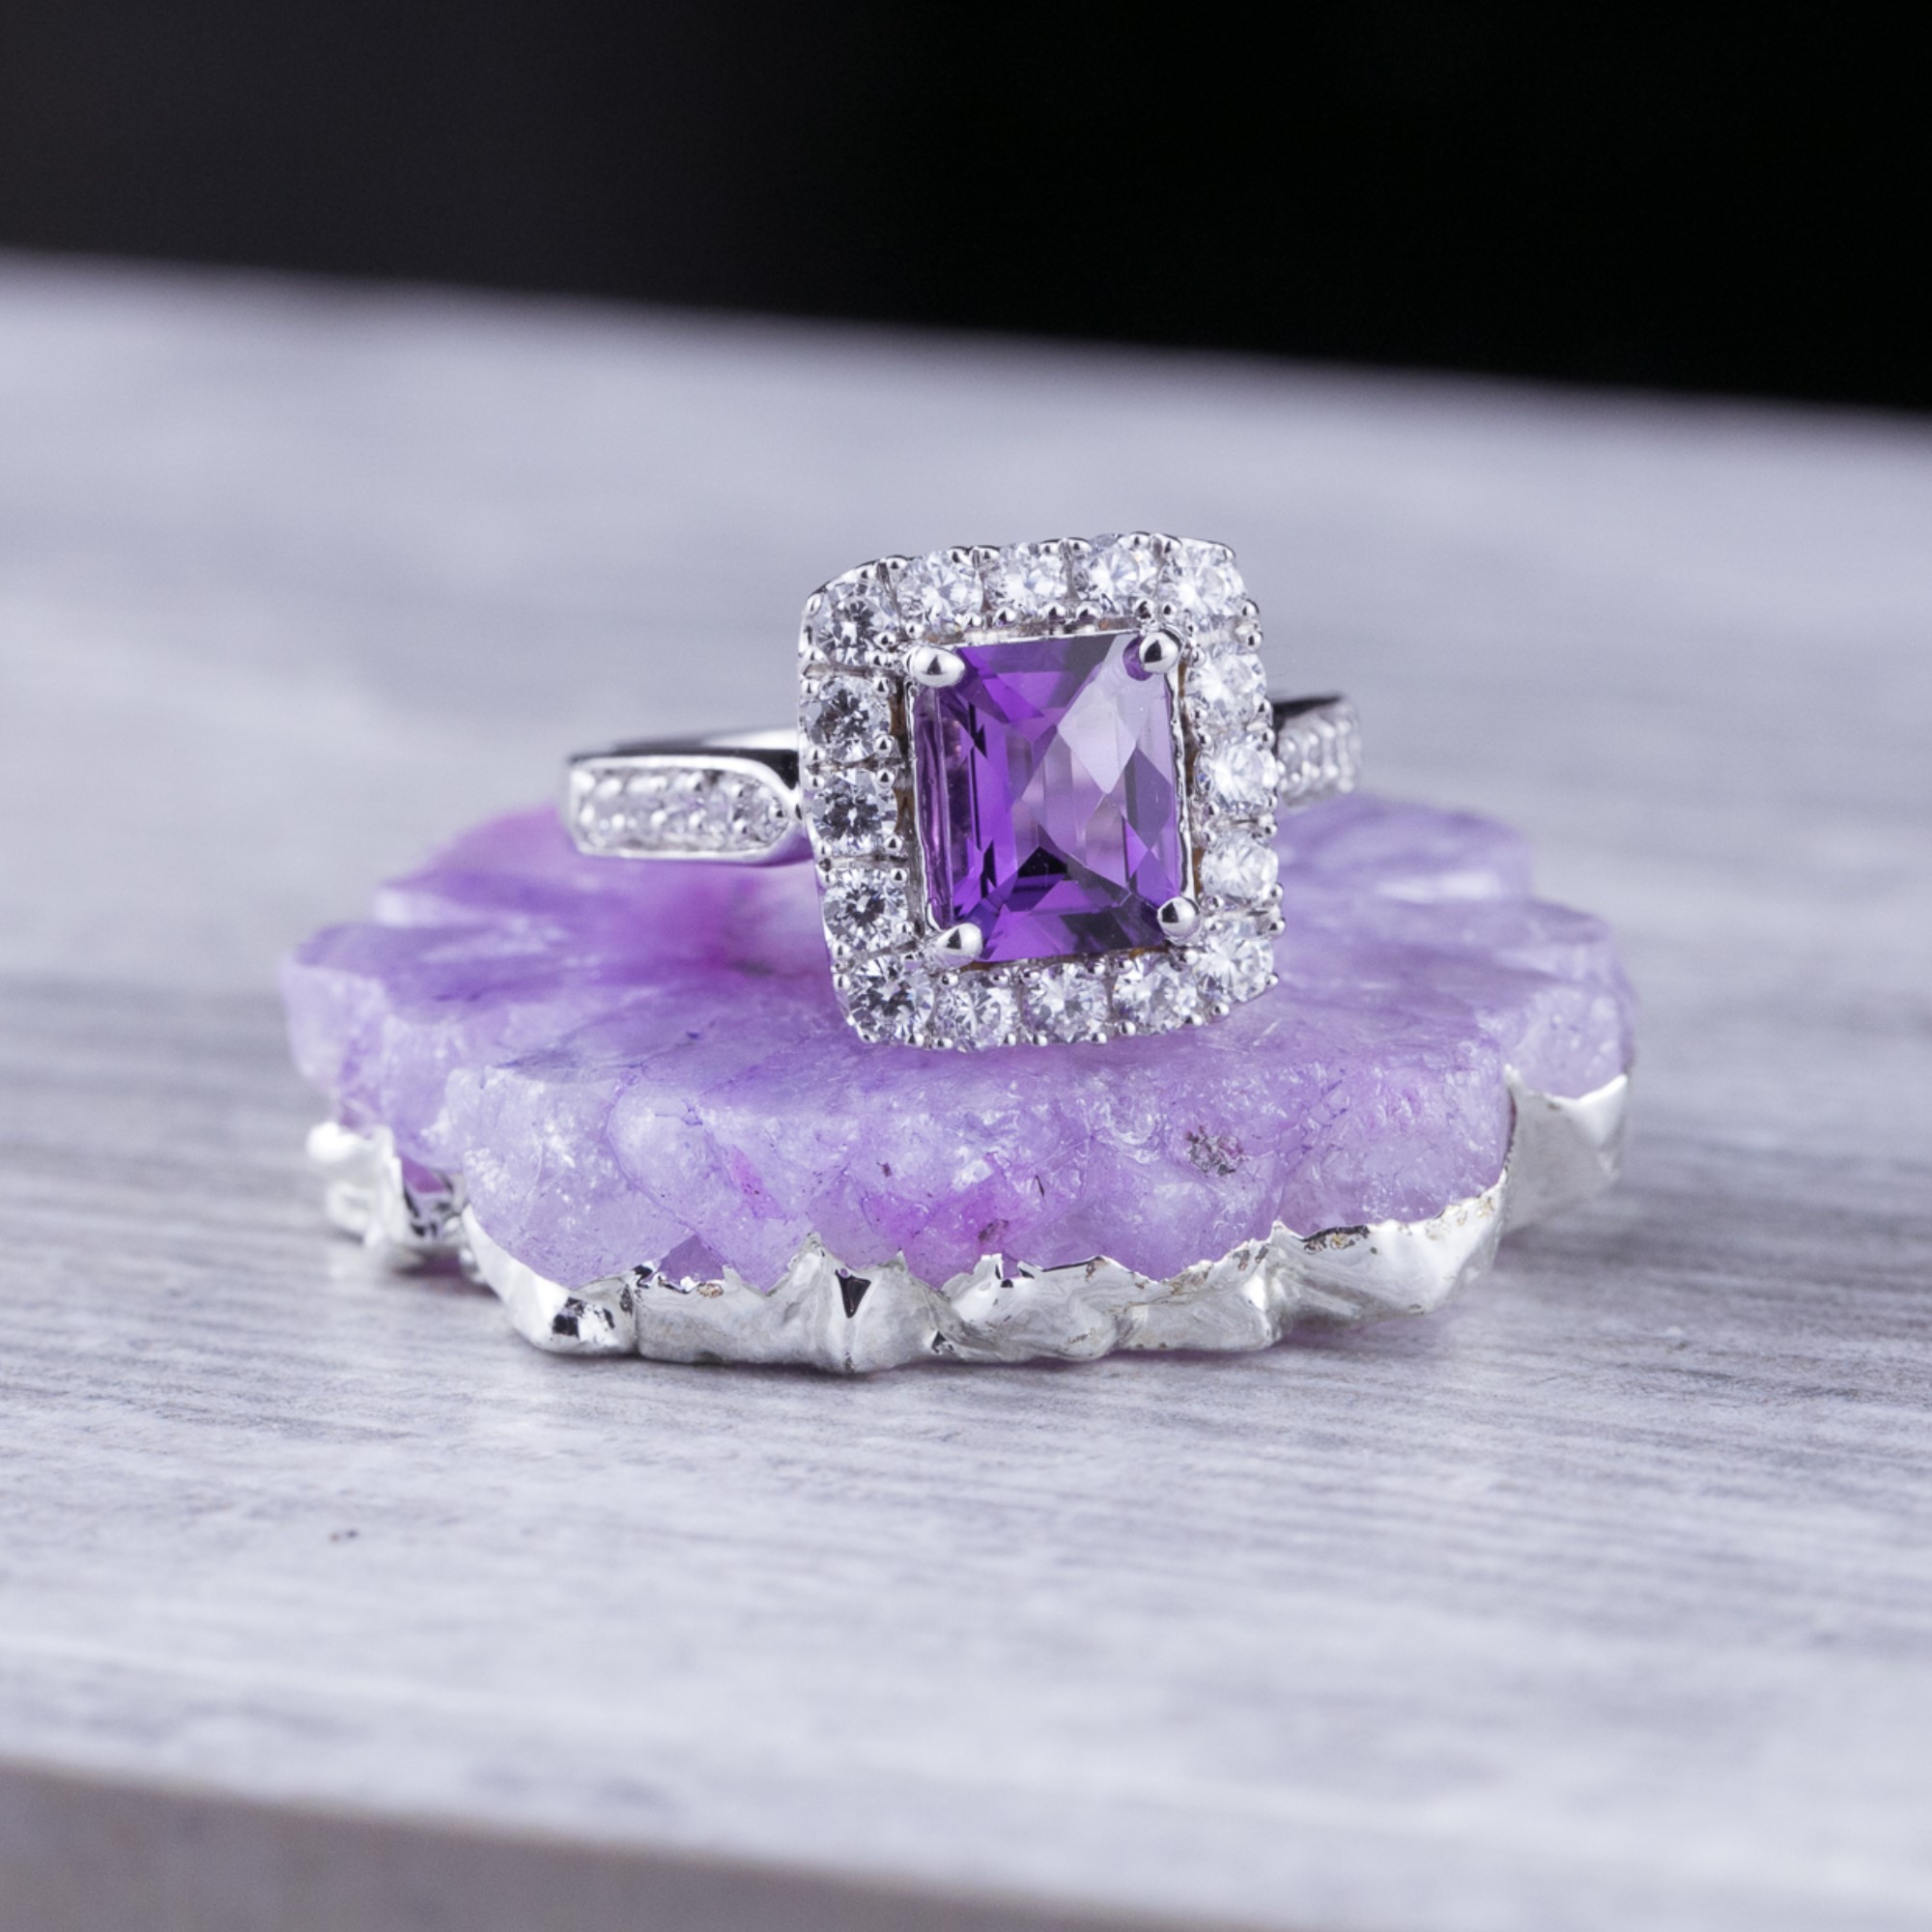 February's Birthstone – The Alluring Amethyst Gemstone